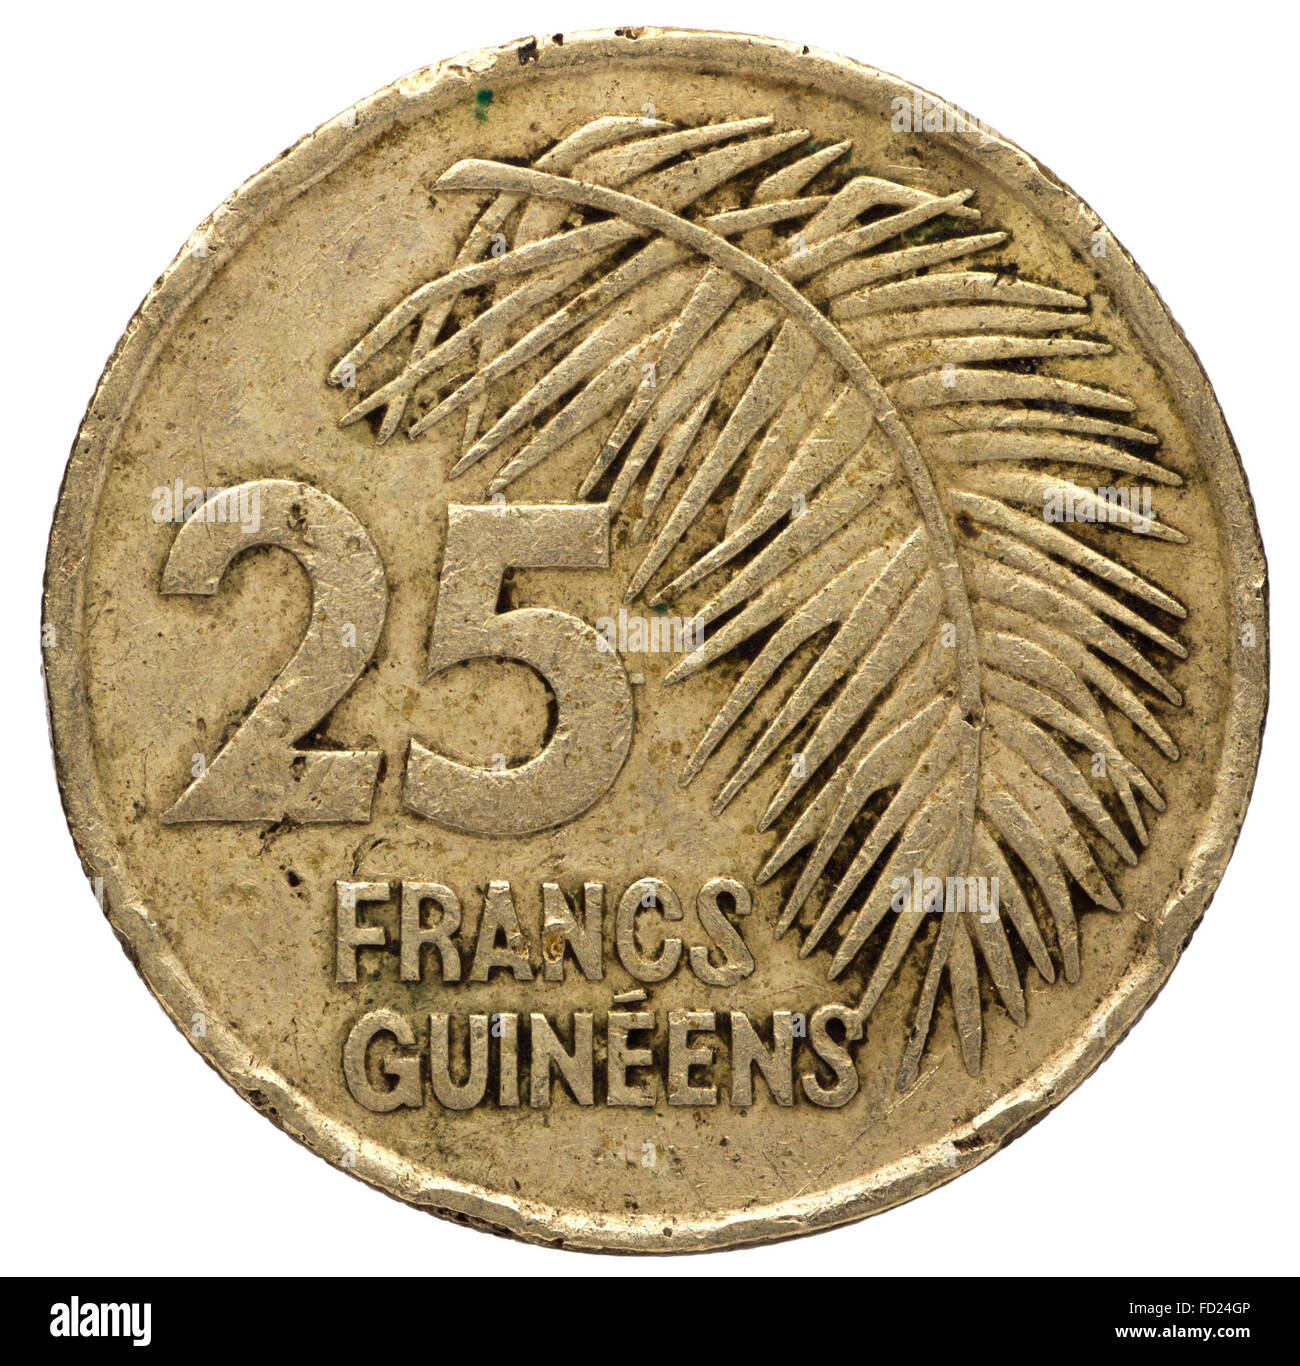 25 Guinean franc coin, 1987, obverse, isolated on white background - Stock Image